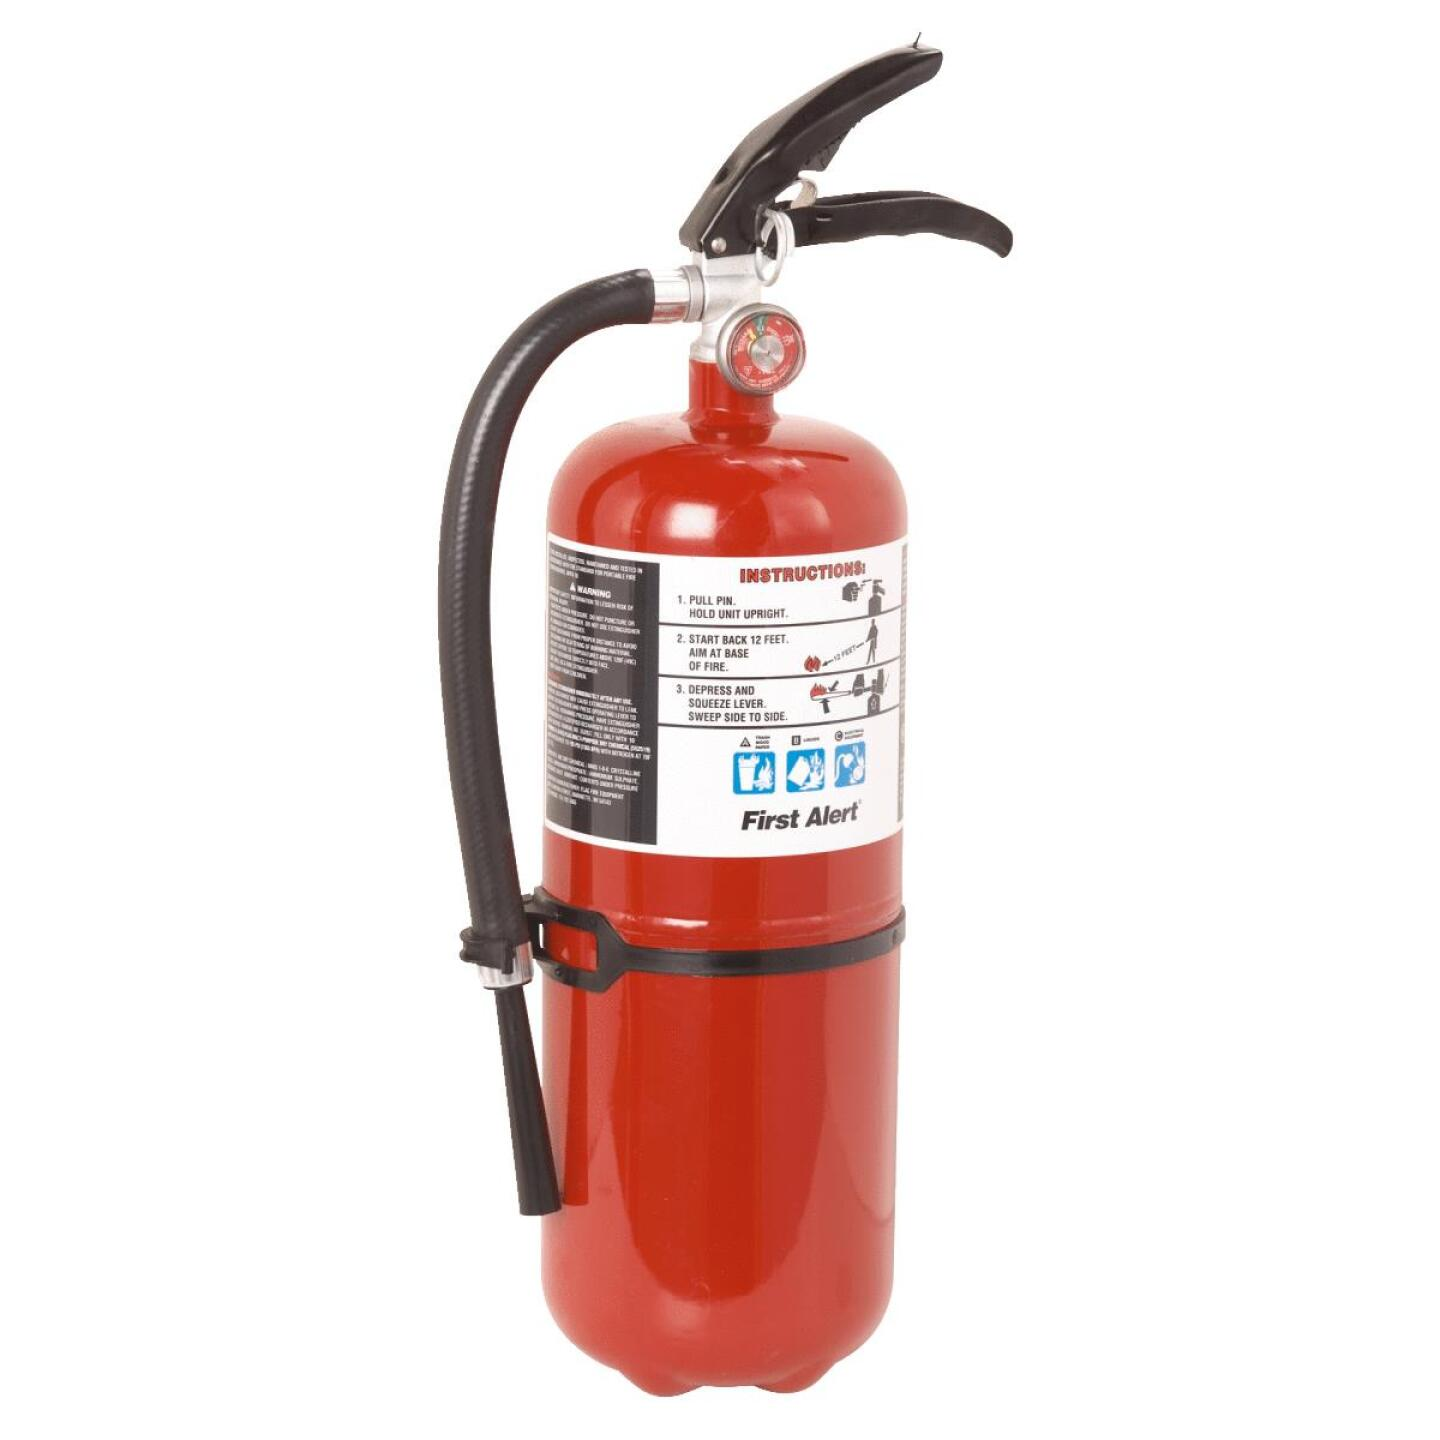 First Alert 4-A:60-B:C Rechargeable Commercial Fire Extinguisher Image 1